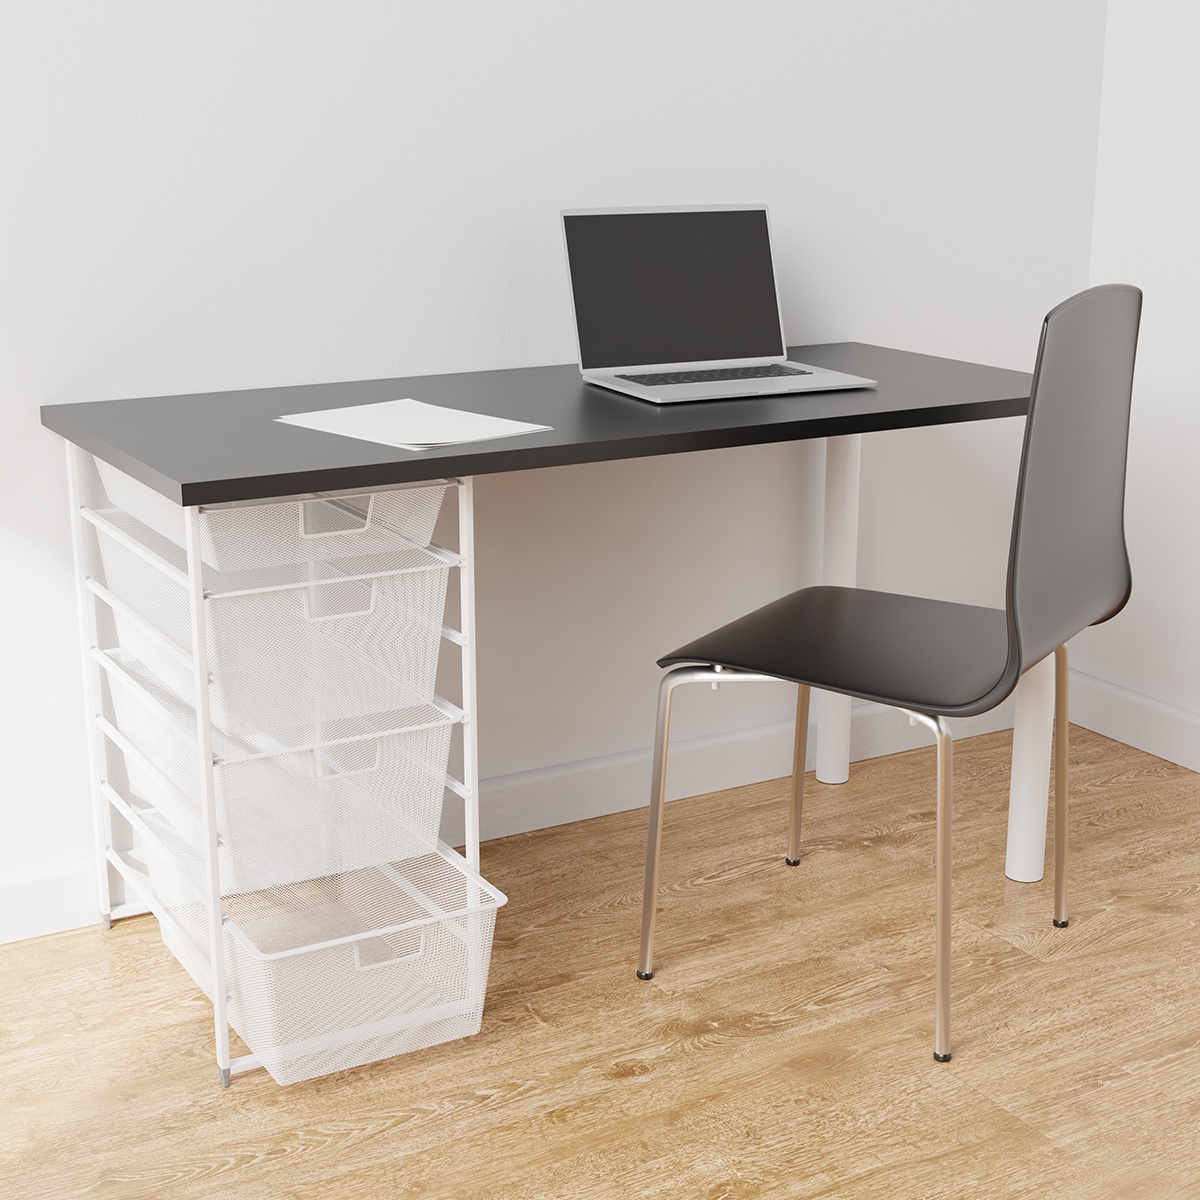 Elfa White & Slate Desk with Drawers